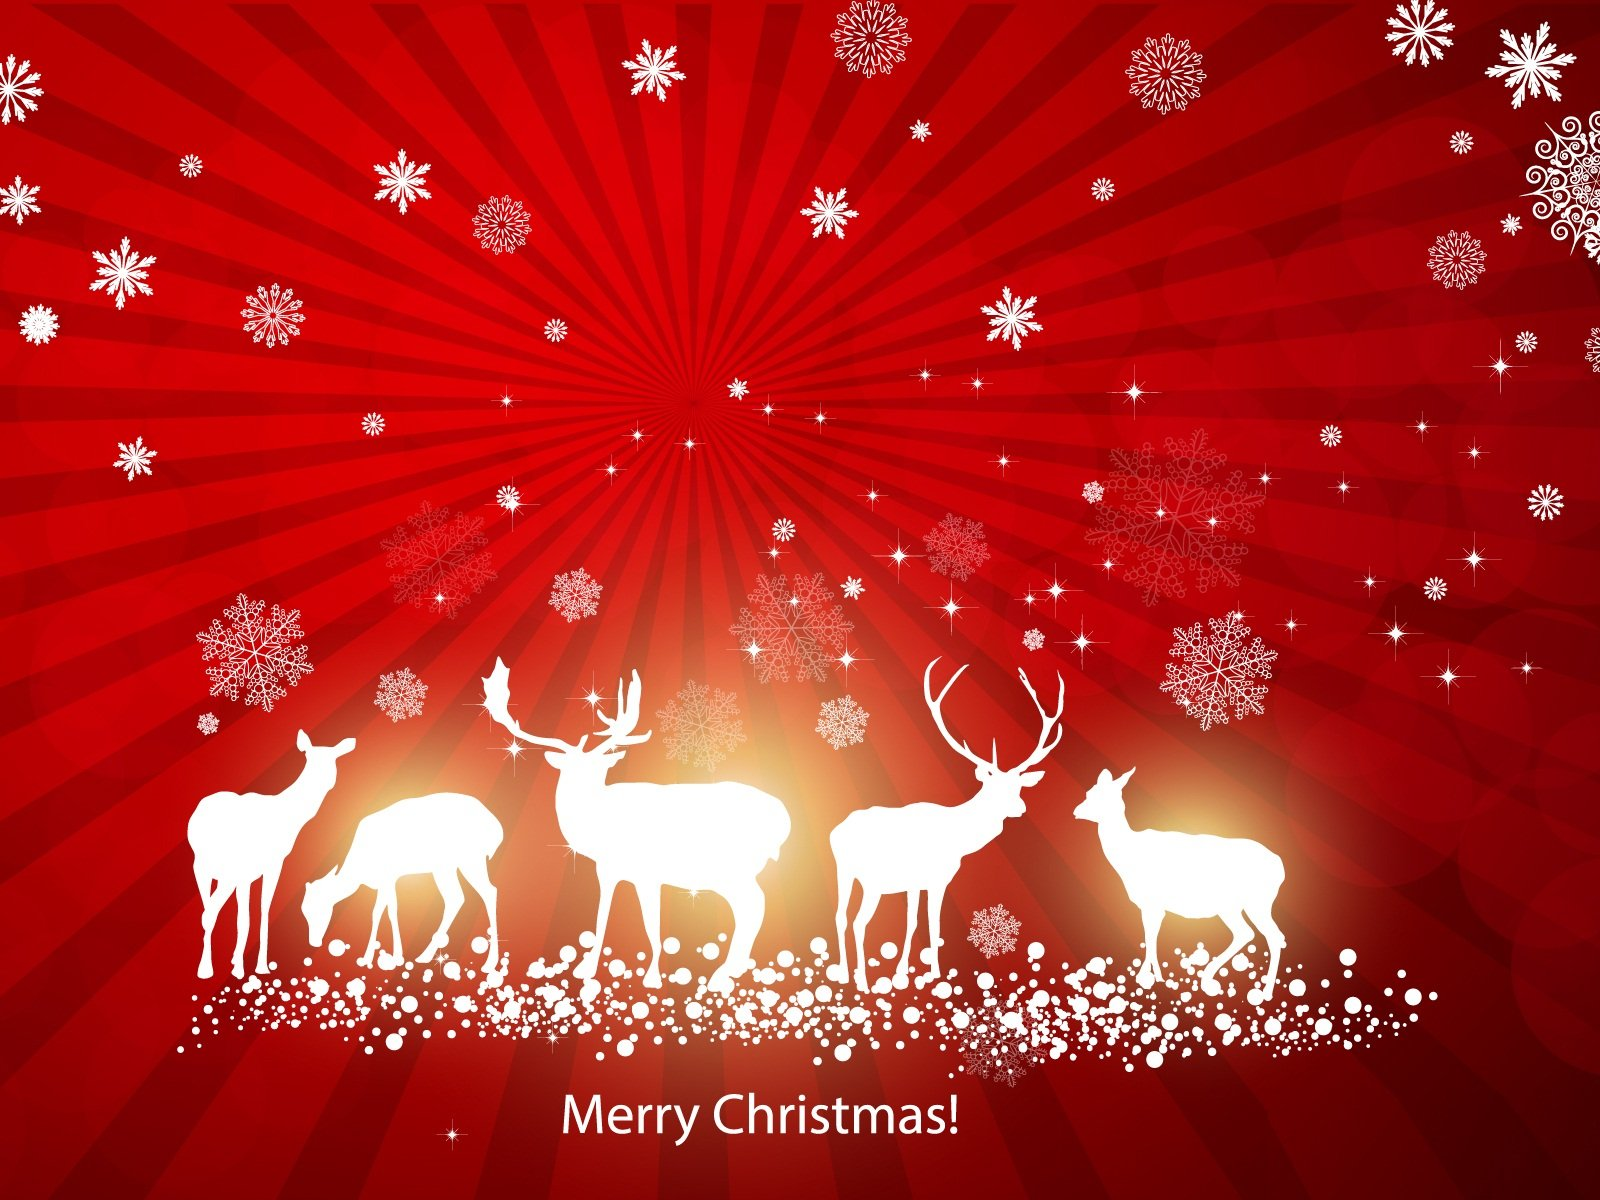 Christmas Screensavers for Mac Vista Desktop Wallpapers Wide 1600x1200